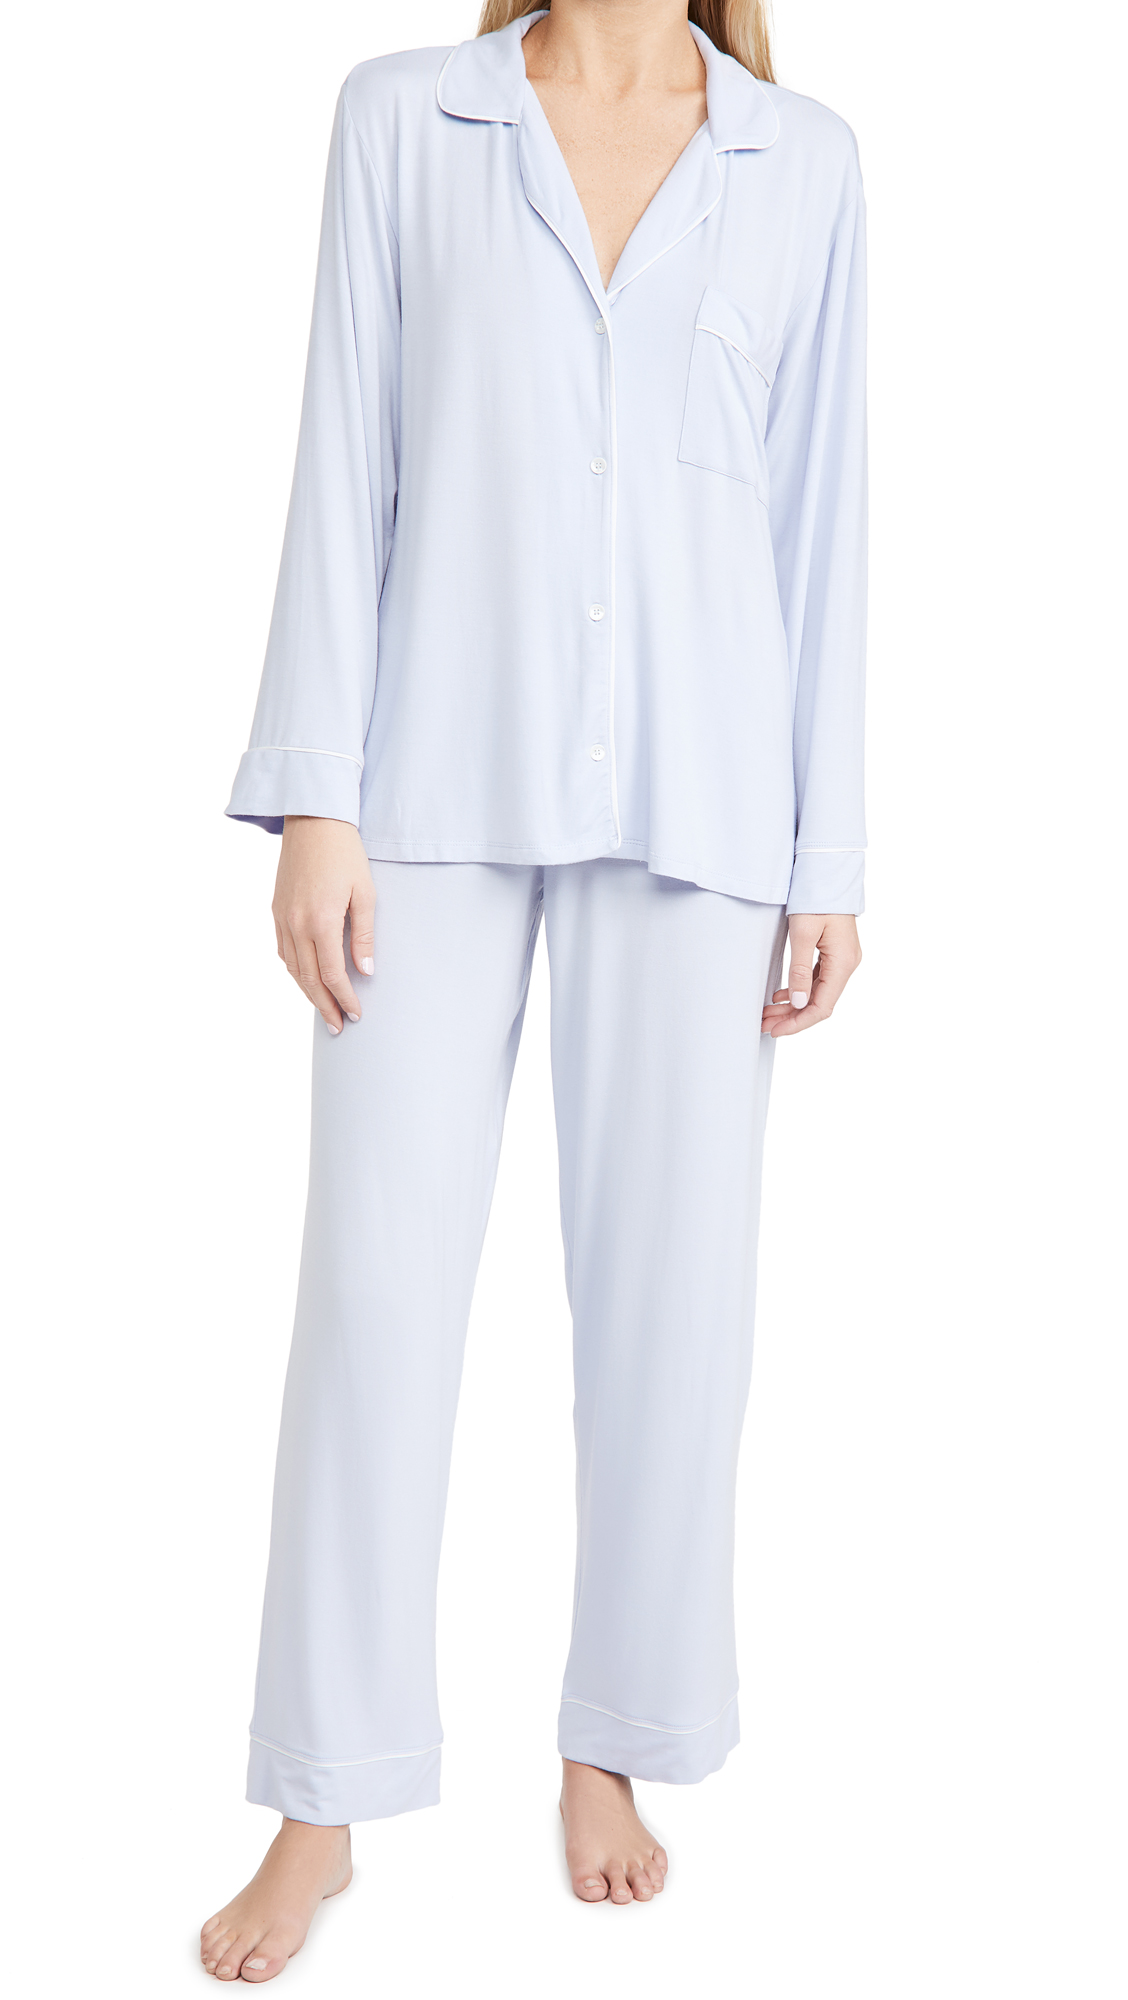 Eberjey Gisele The Long PJ Set